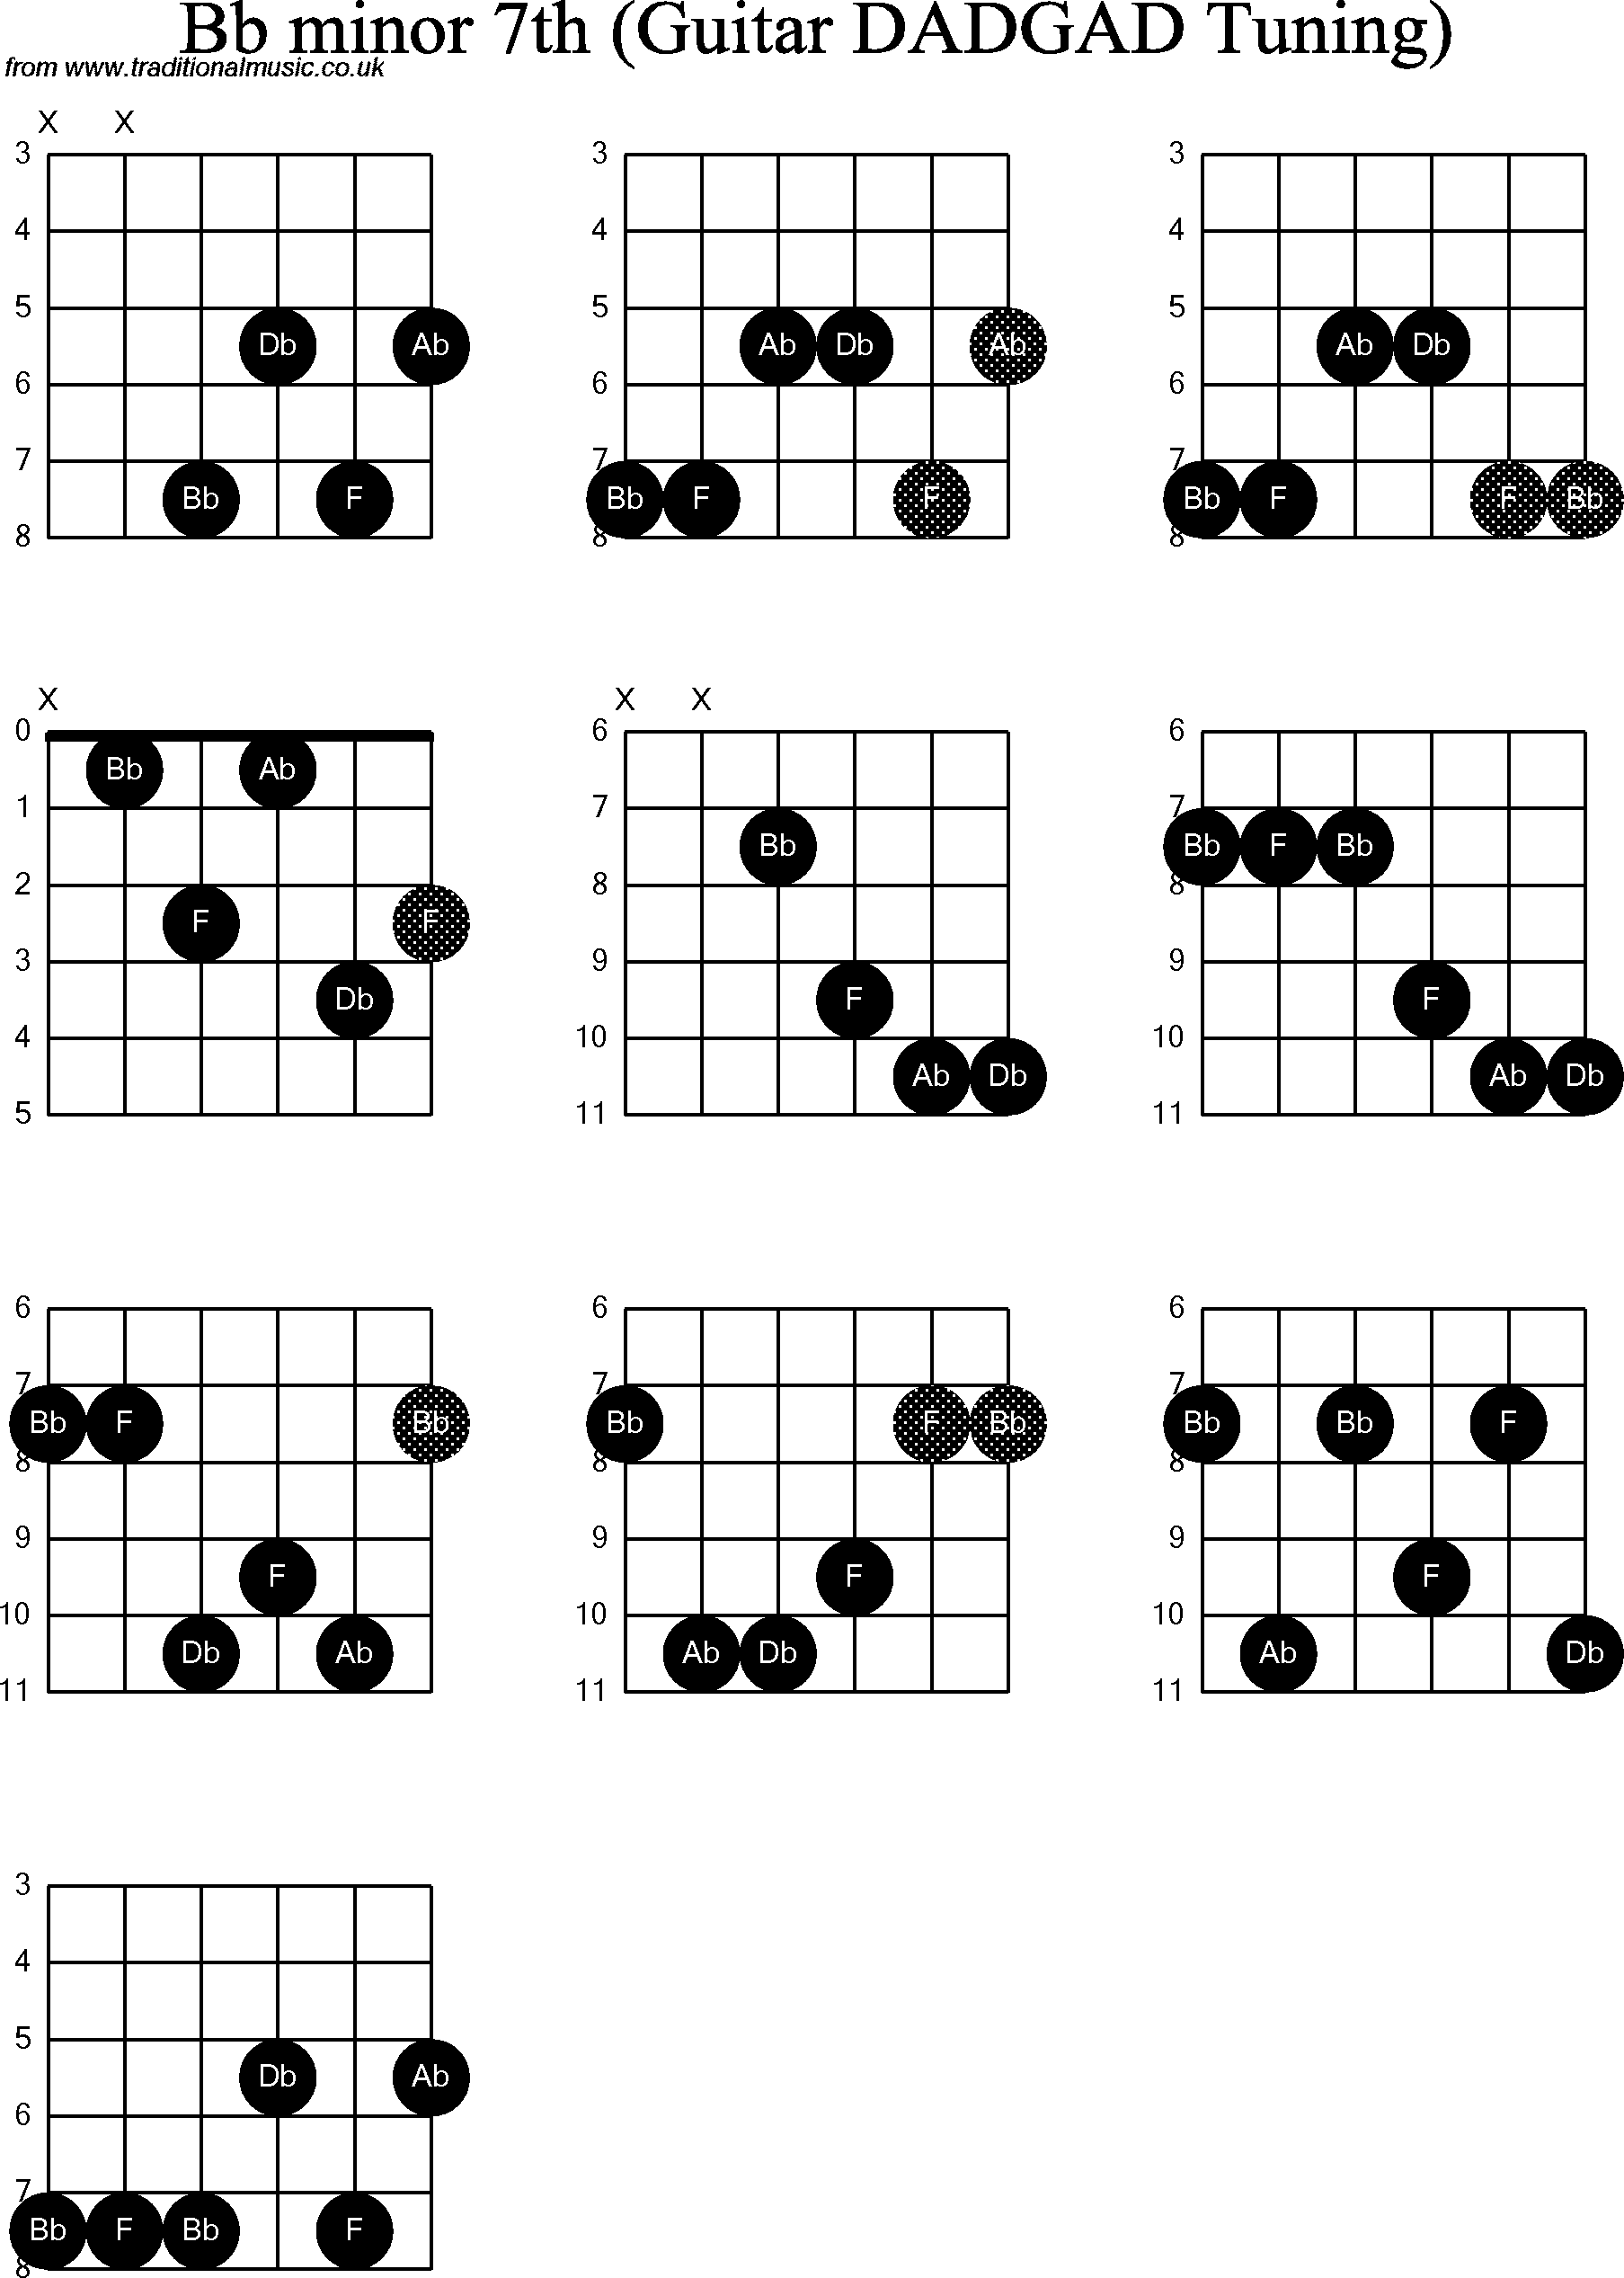 Chord diagrams d modal guitar dadgad bb minor7th chord diagrams for d modal guitardadgad bb minor7th hexwebz Image collections